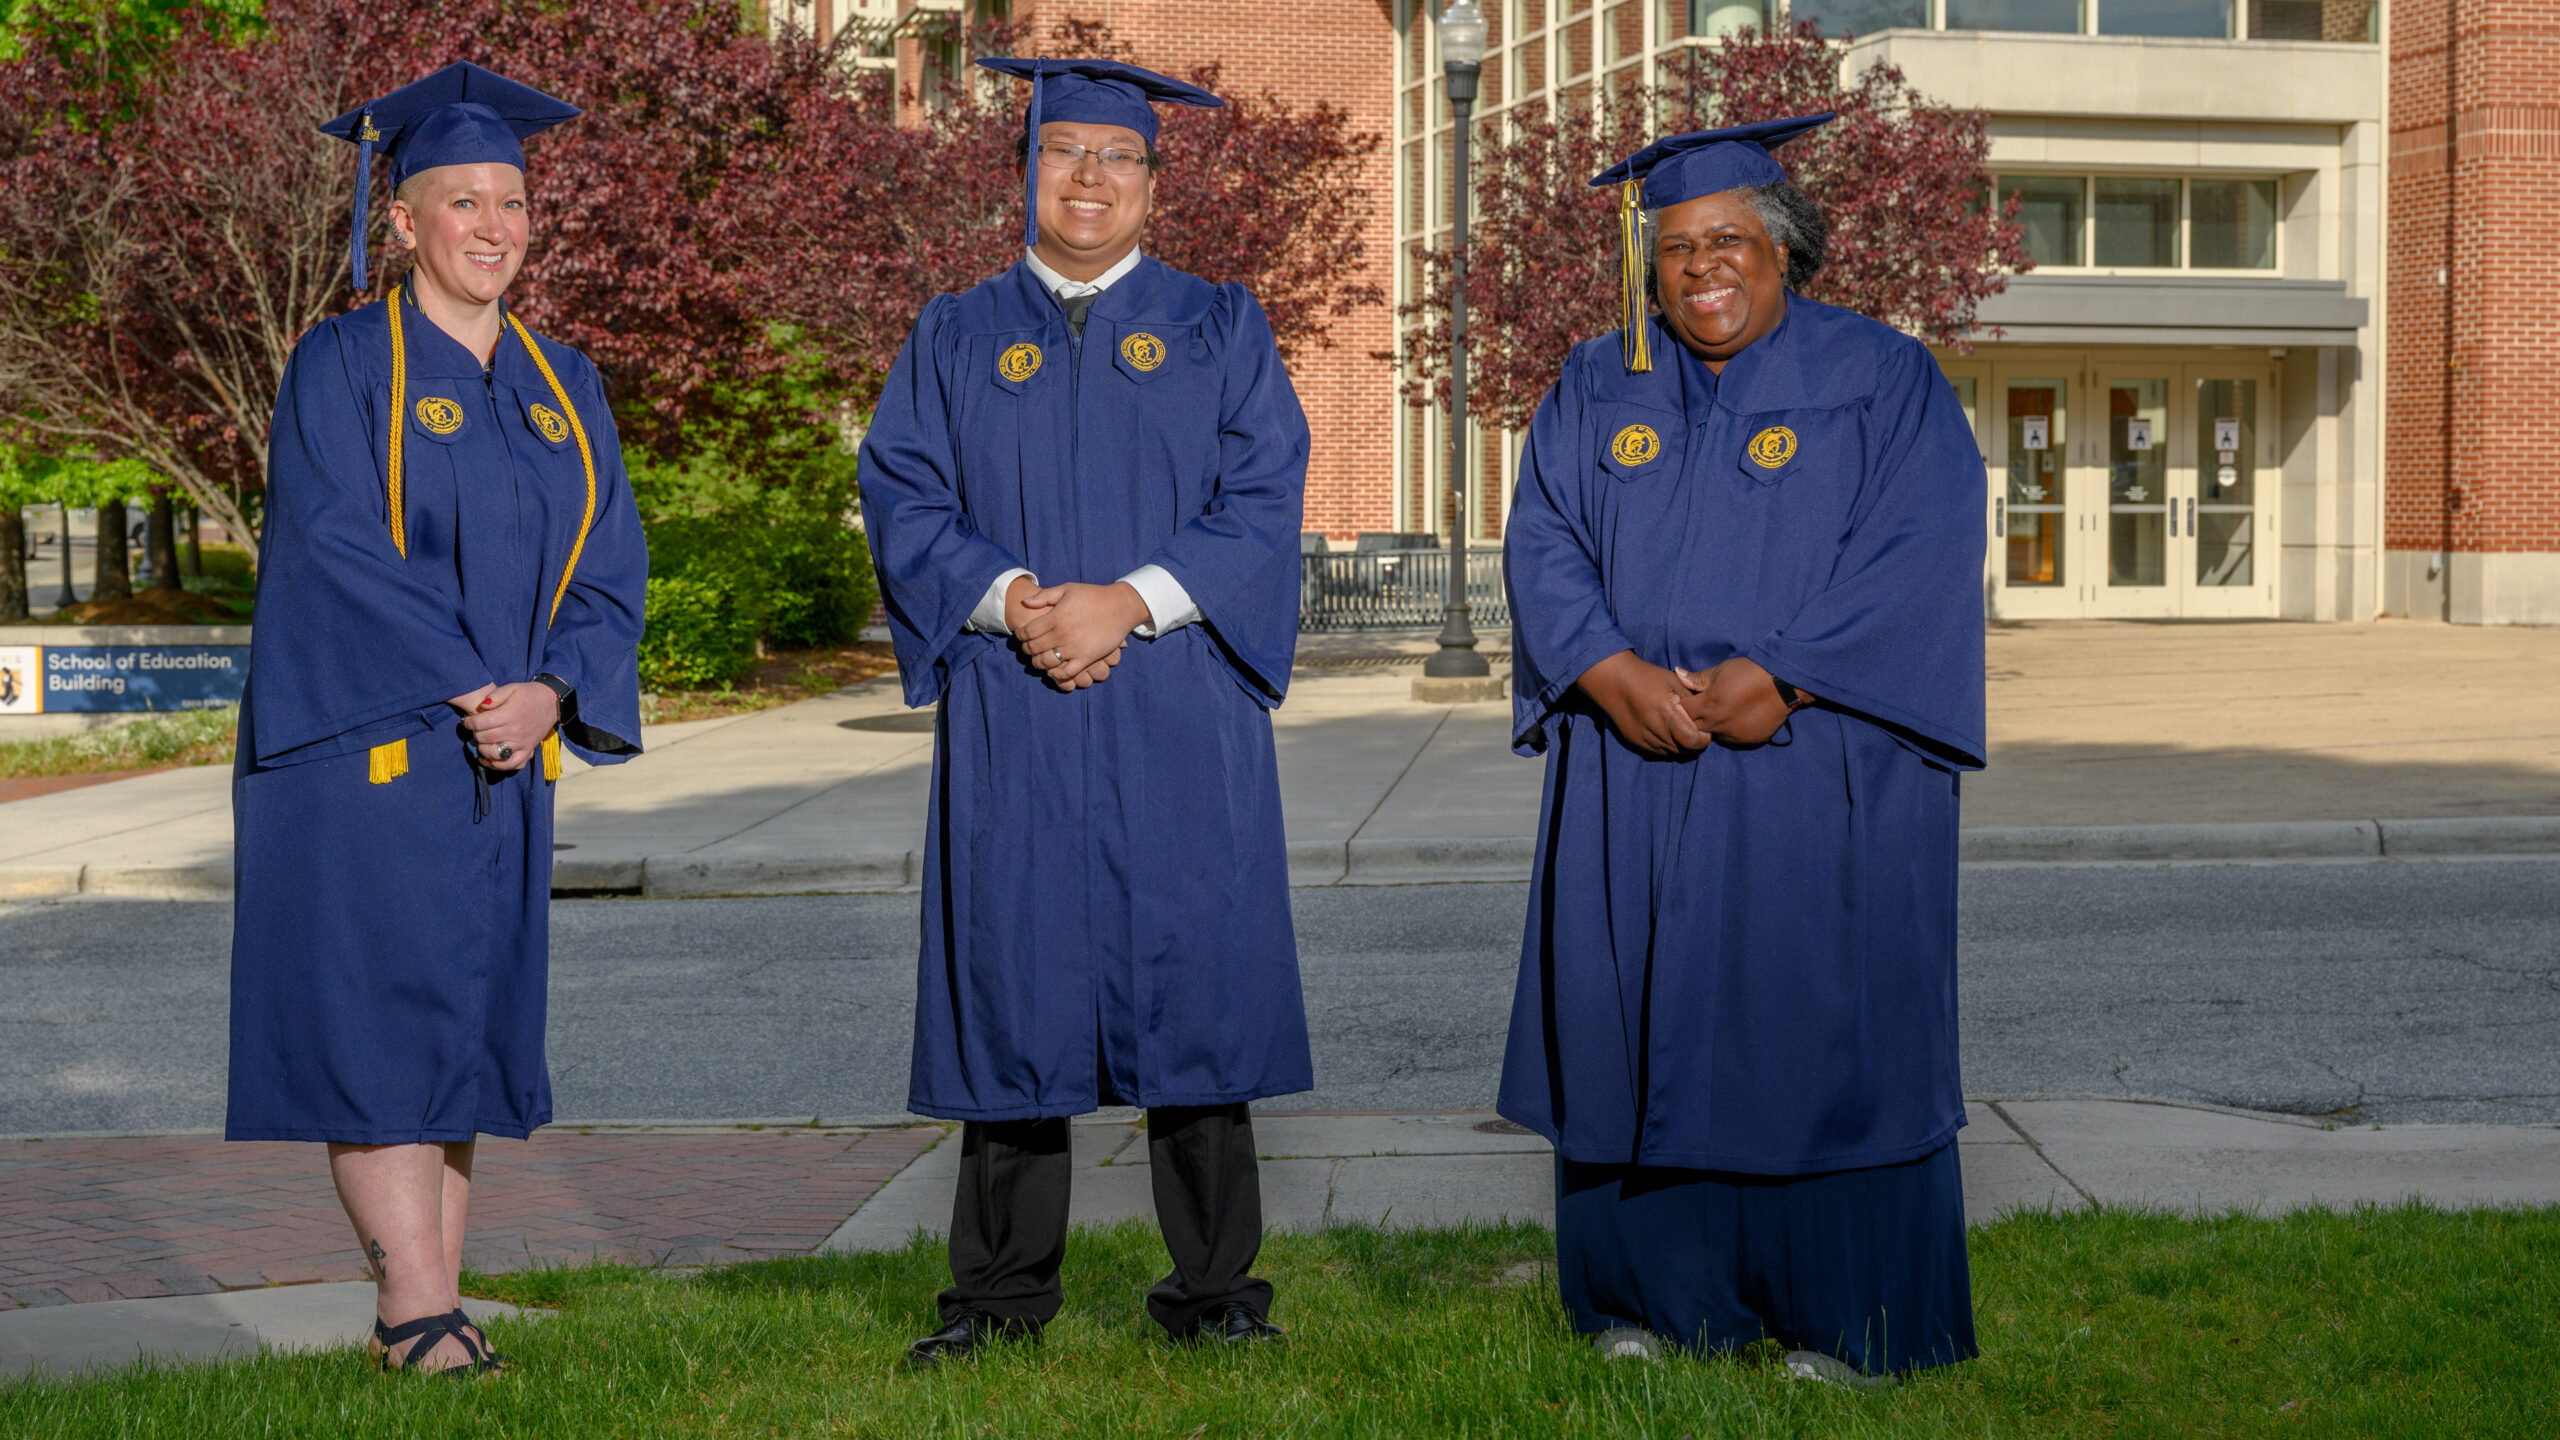 Jessica Jeffus, Jimmy Vang, and Lynnette Pitts pose in their cap and gown in front of the School of Education Building